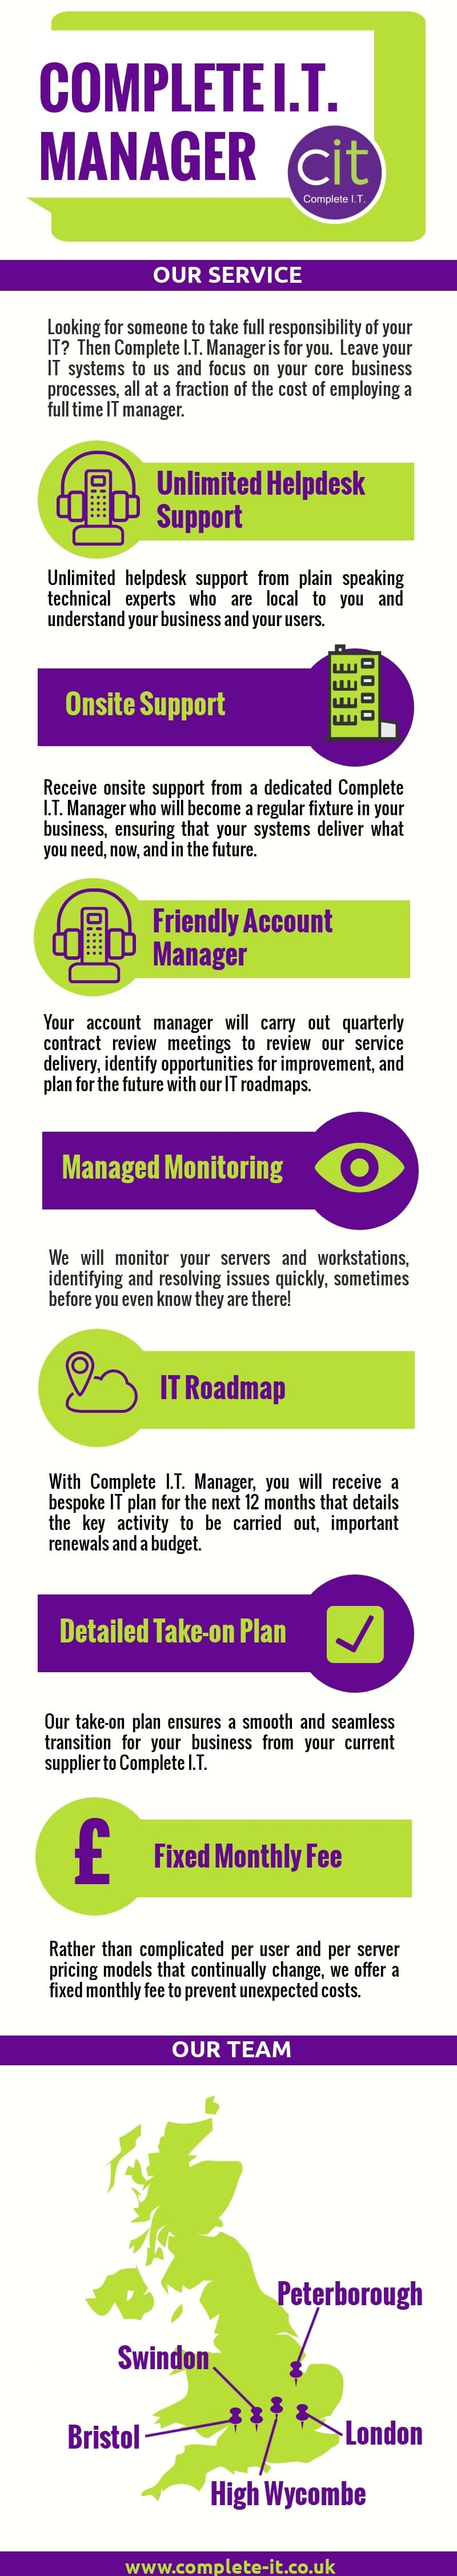 Complete-I.T.-Manager-Infographic